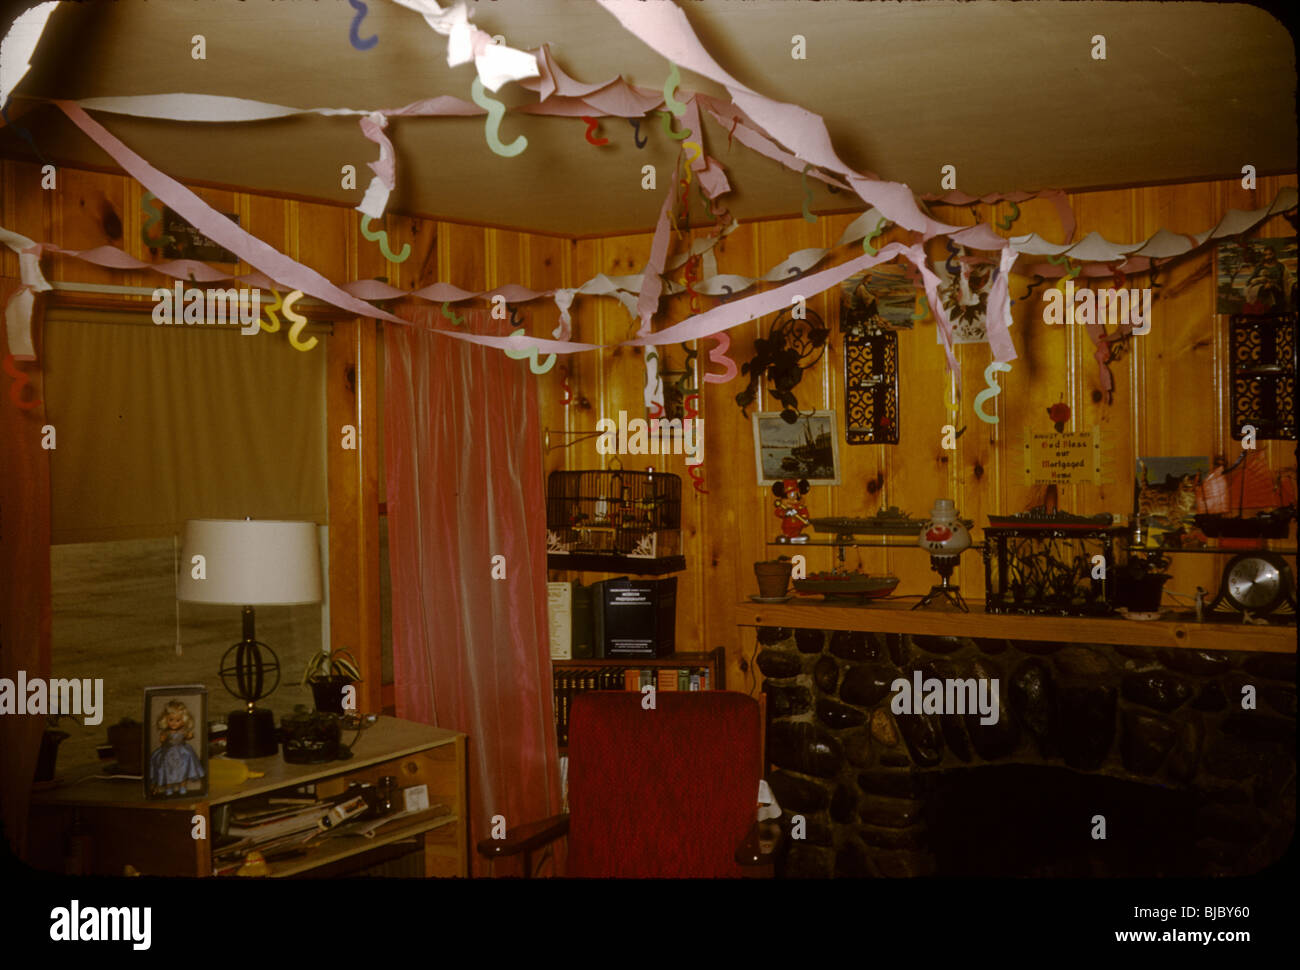 A Room Inside A House With Wood Panel Walls Is Decorated For A New Years  Party During The Late 1950s. Celebration Ribbons